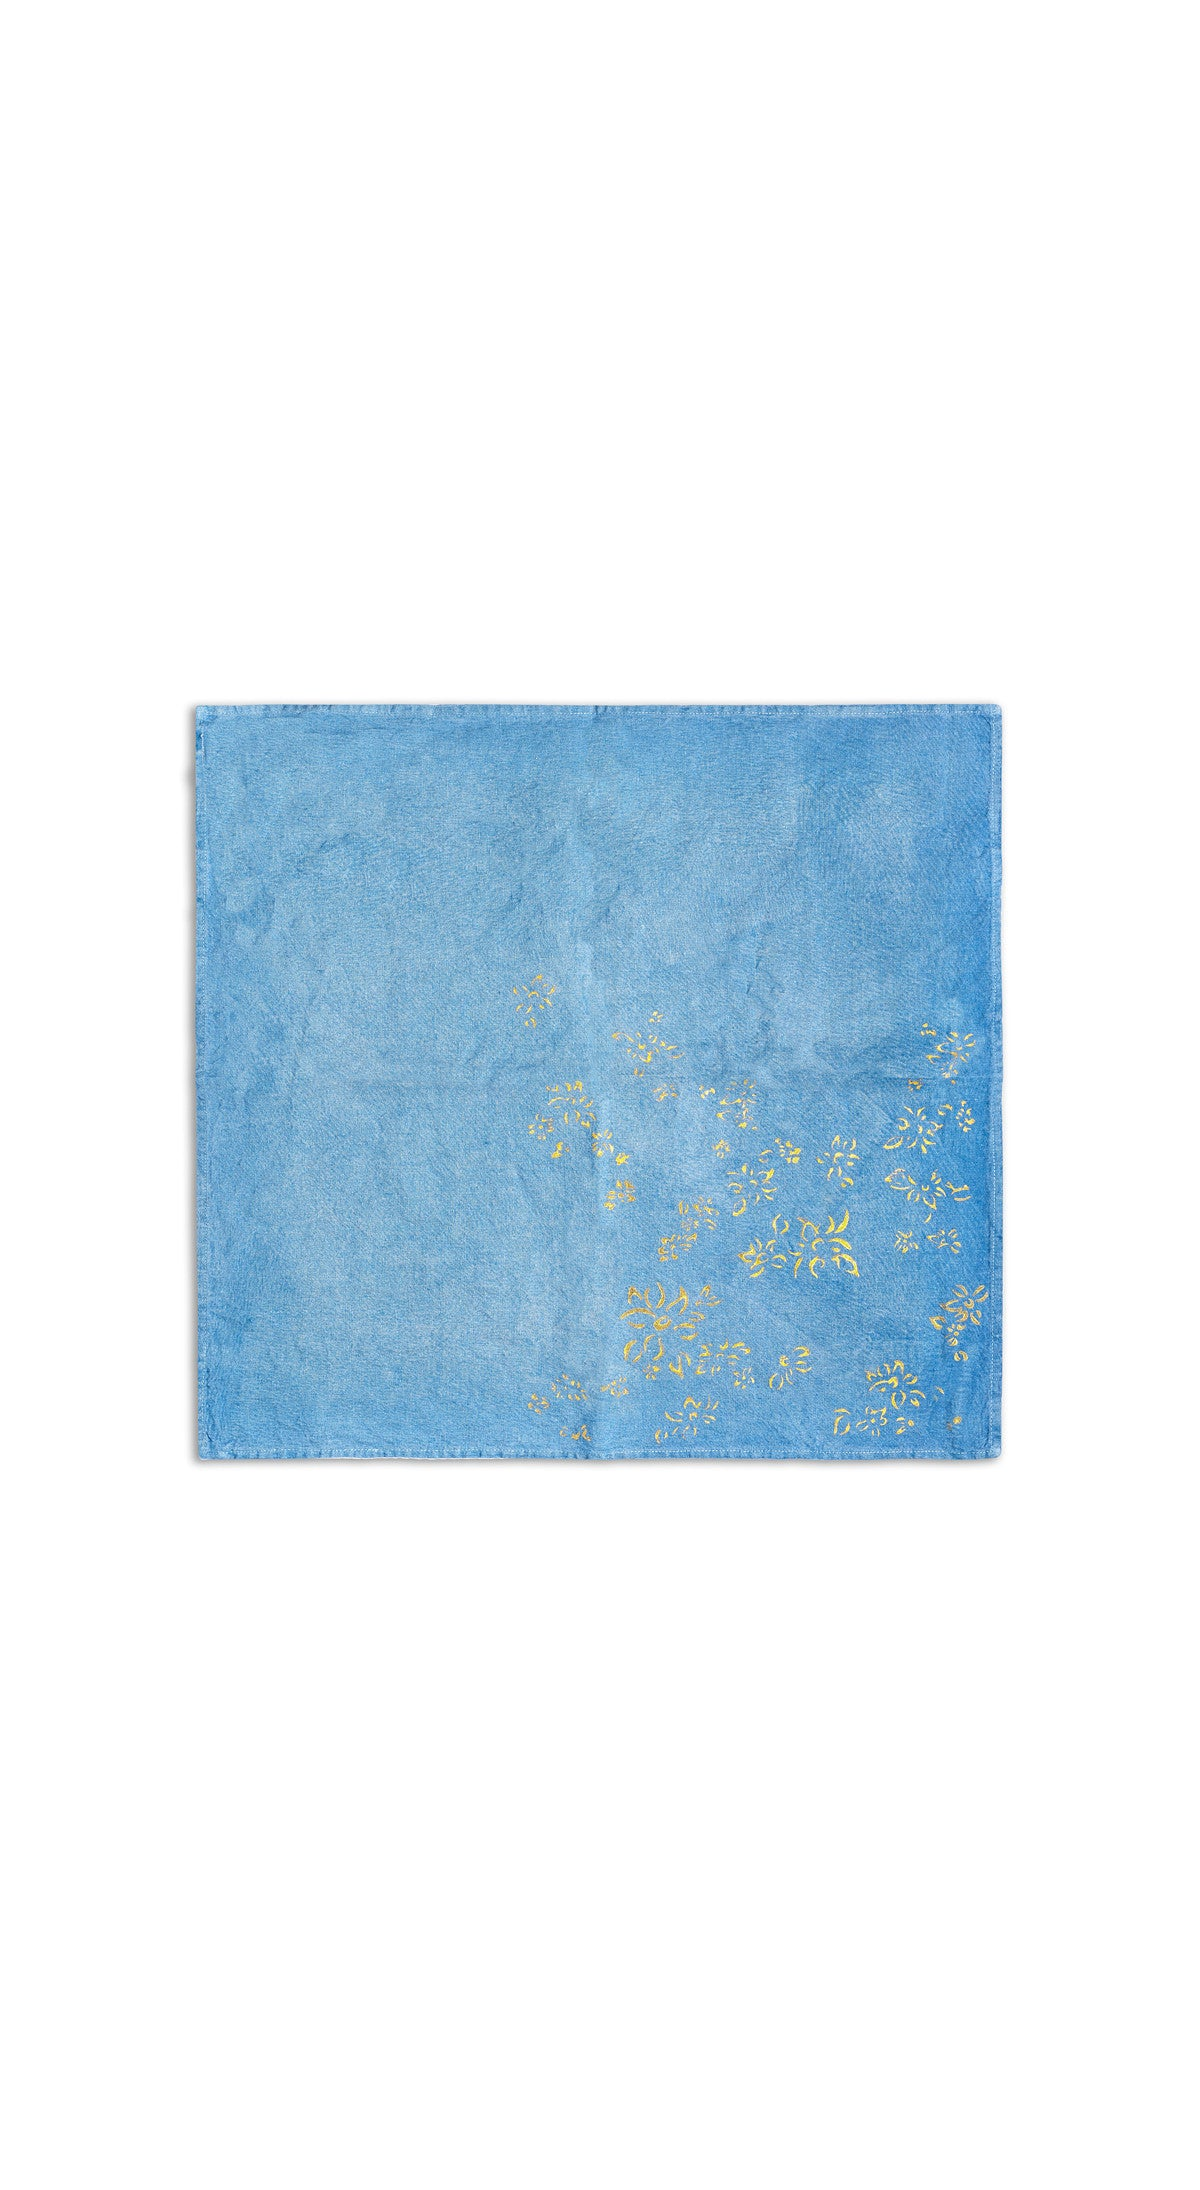 Bernadette's Hand Stamped Falling Flower On Full Field Linen Napkin in Sky Blue & Gold